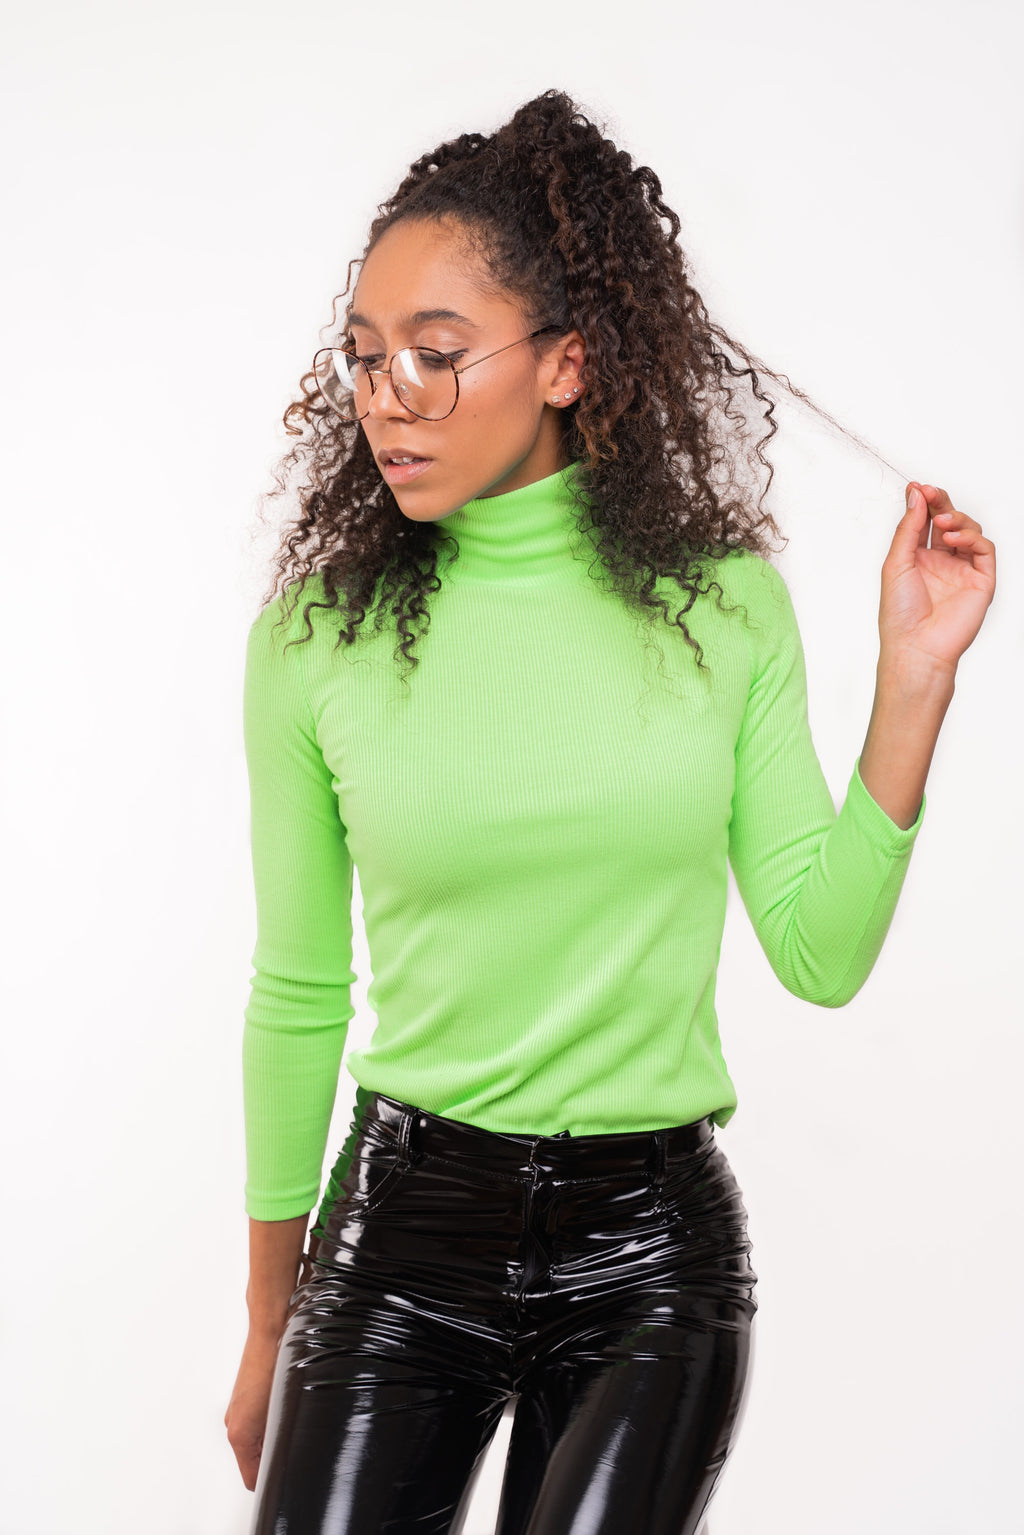 The Slime Turtleneck